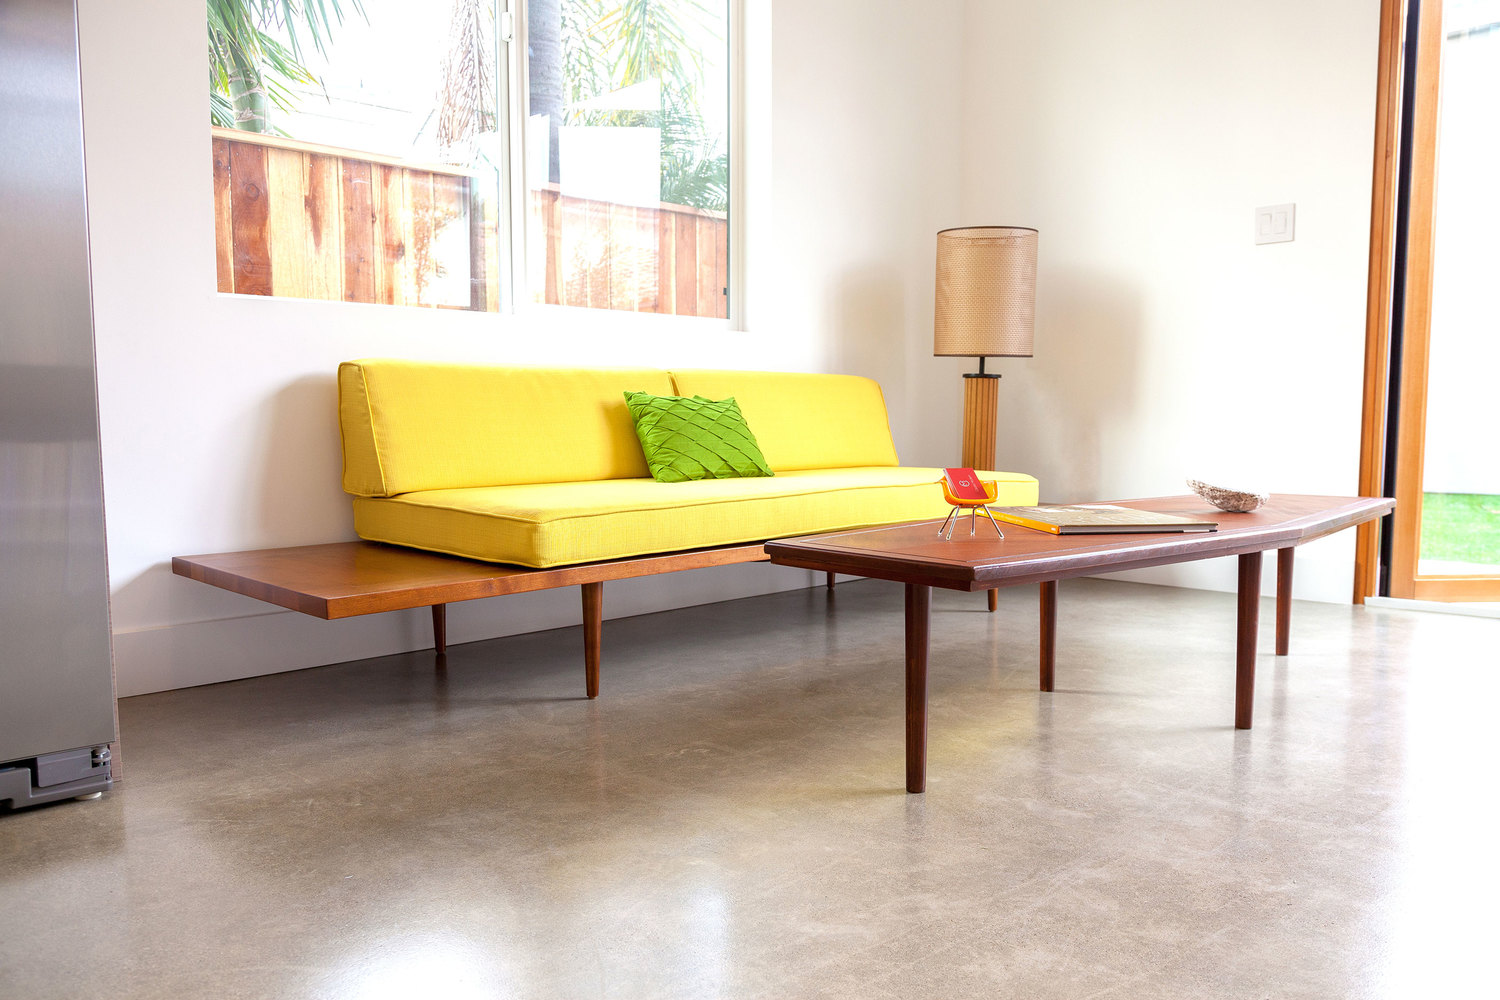 Daybed sofa couch - Horizon Daybed Sofa